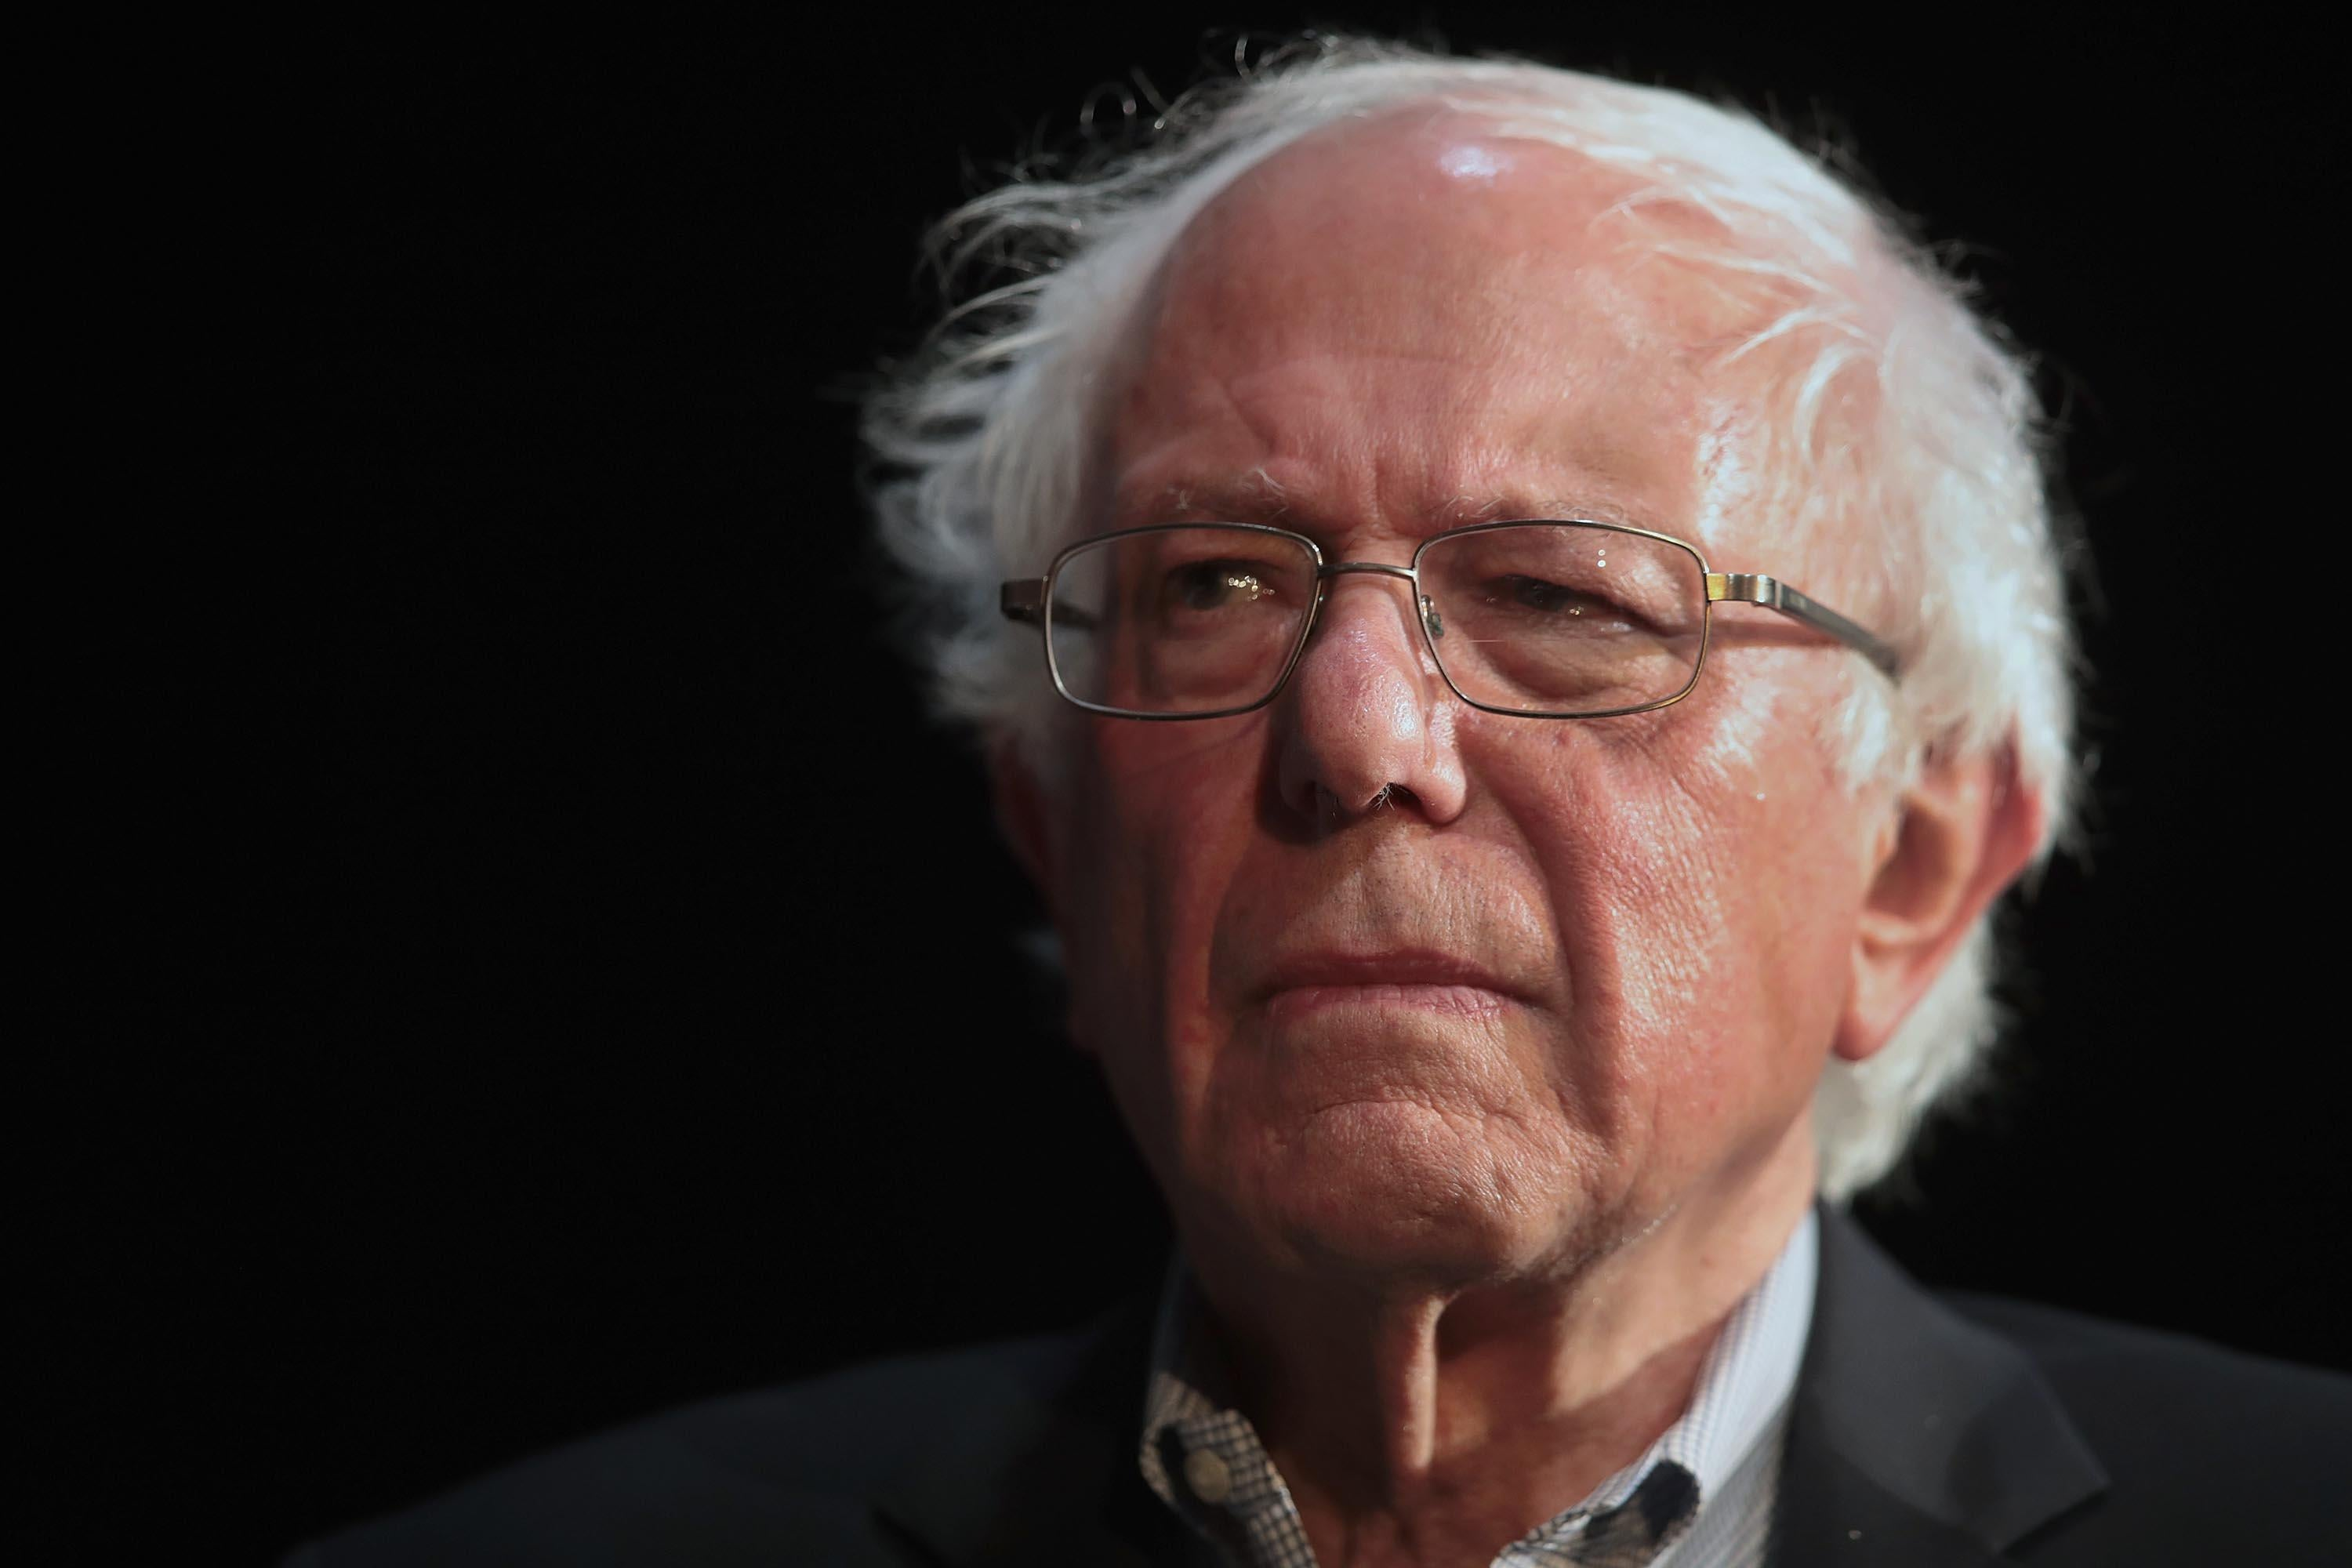 MUSCATINE, IOWA - APRIL 06: Democratic presidential candidate Senator Bernie Sanders (I-VT) host a campaign rally at the Fairfield Arts and Convention Center on April 06, 2019 in Fairfield, Iowa. The event is the final of three campaign events Sanders held in the state today.  (Photo by Scott Olson/Getty Images)